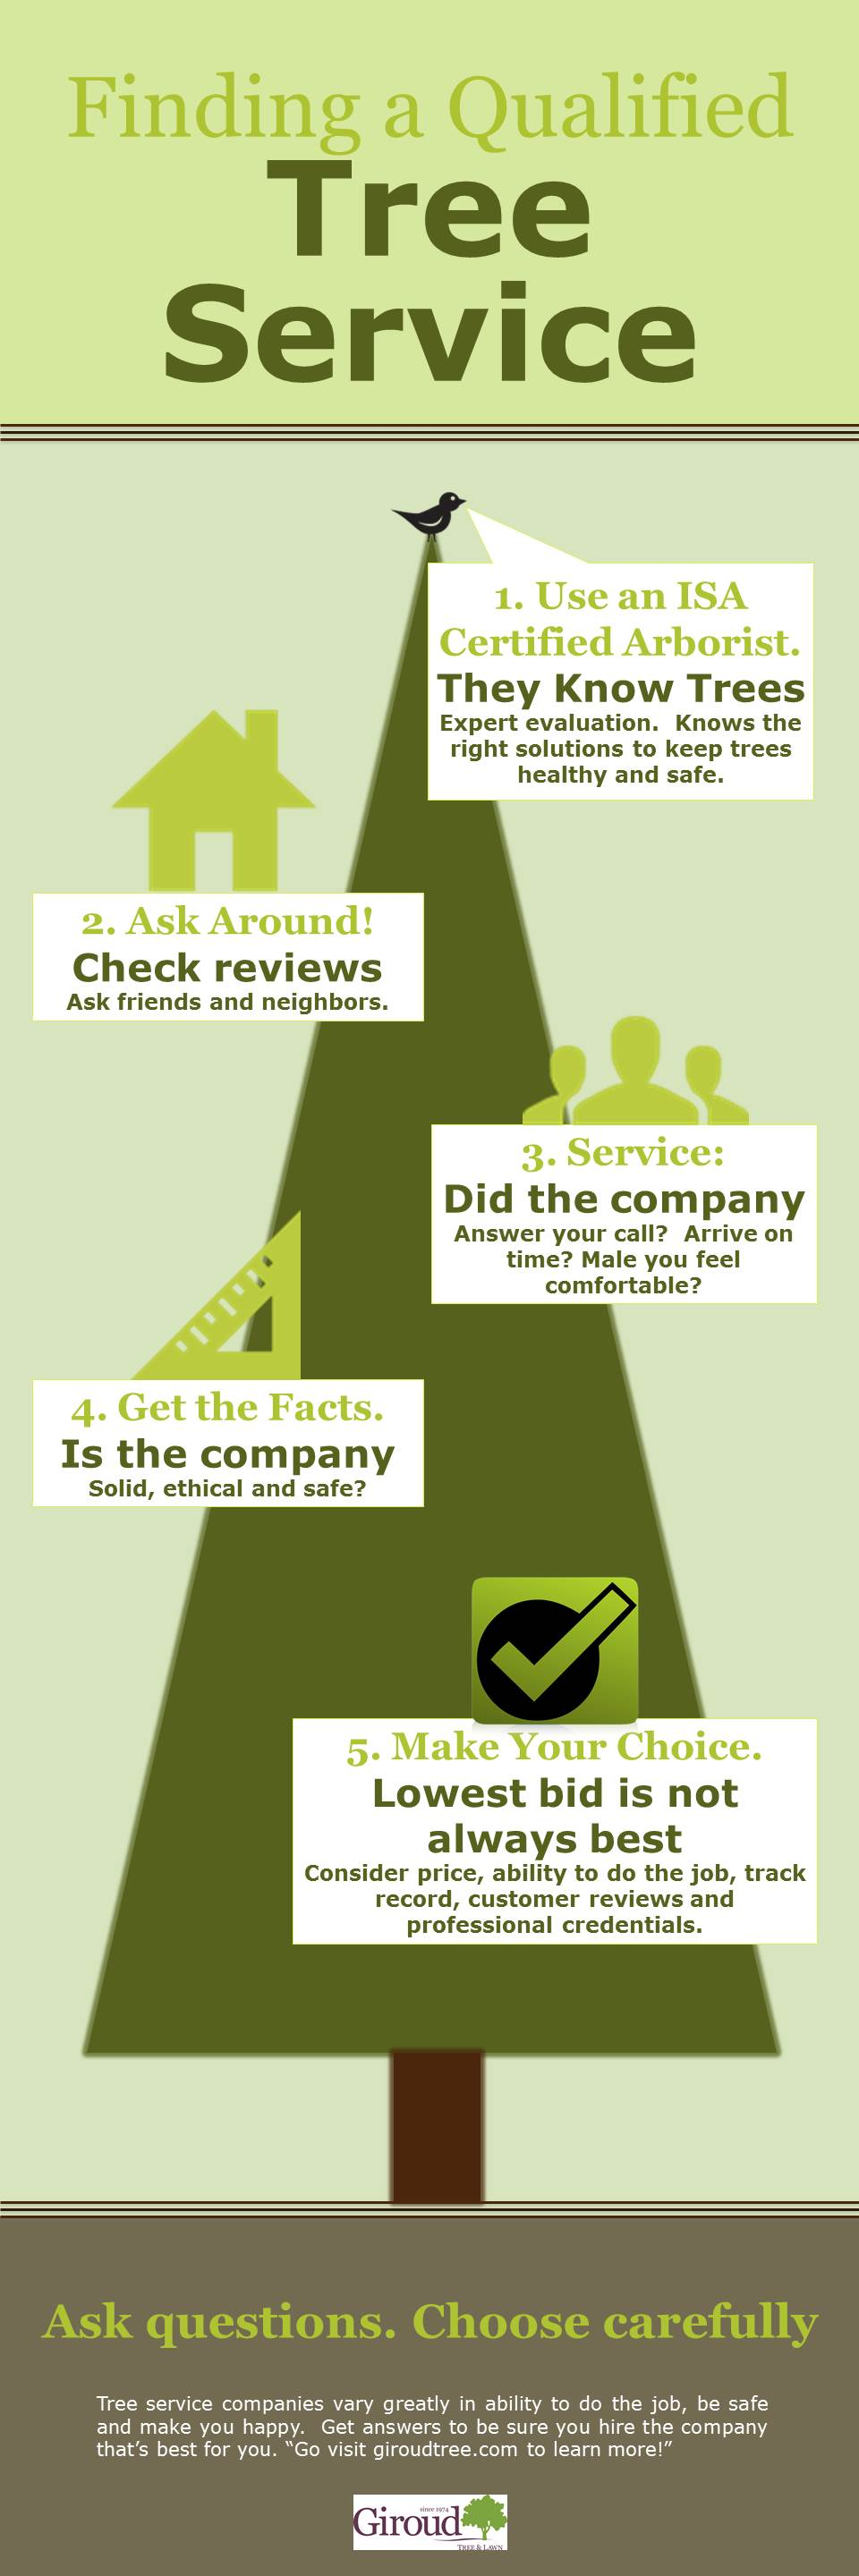 Hiring-a-Qualified-Tree-Service-Infographic.jpg